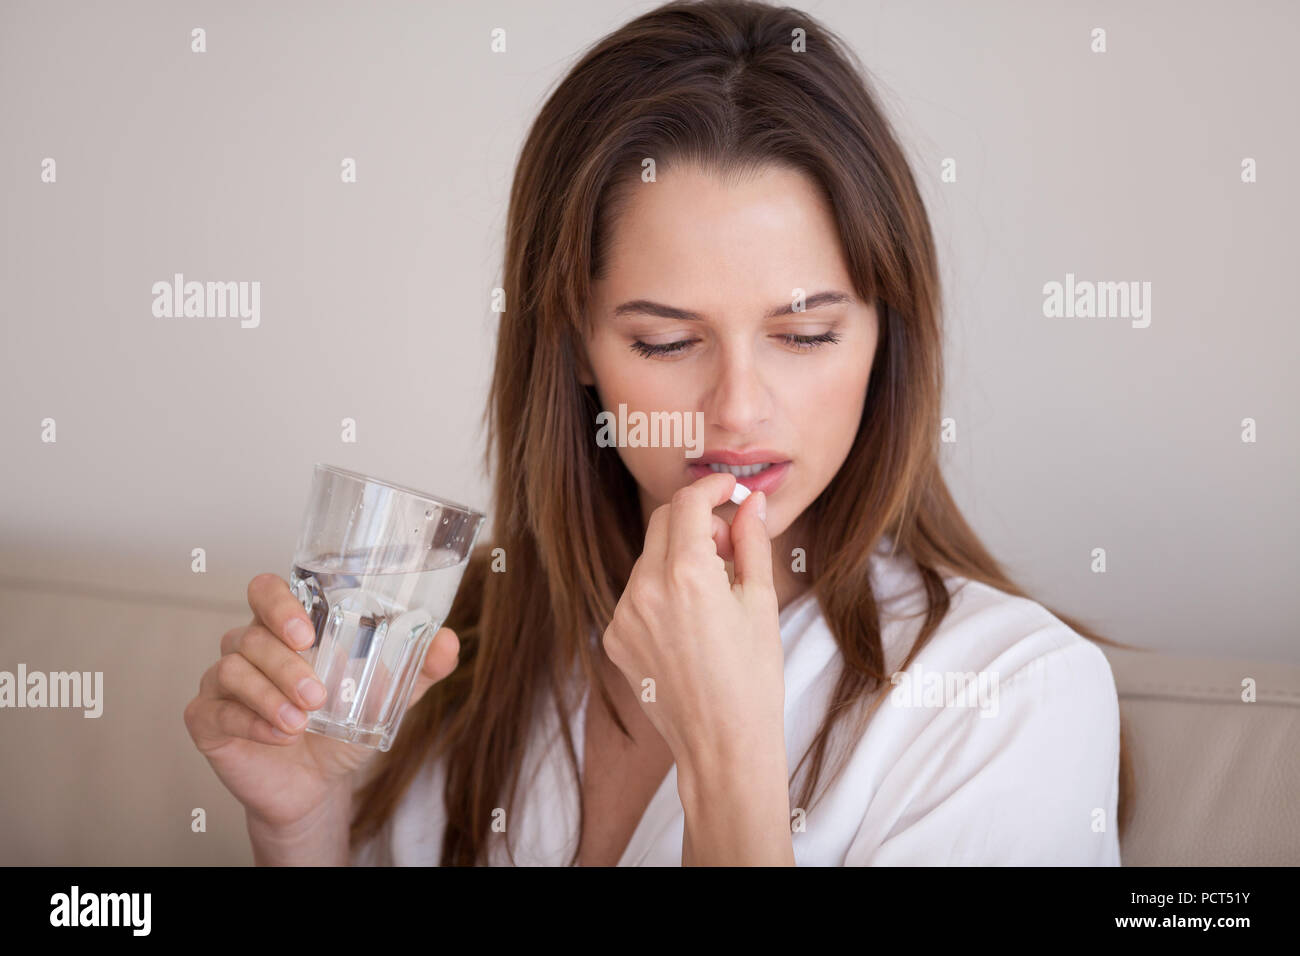 Sad millennial woman taking pill to cure pain or depression - Stock Image